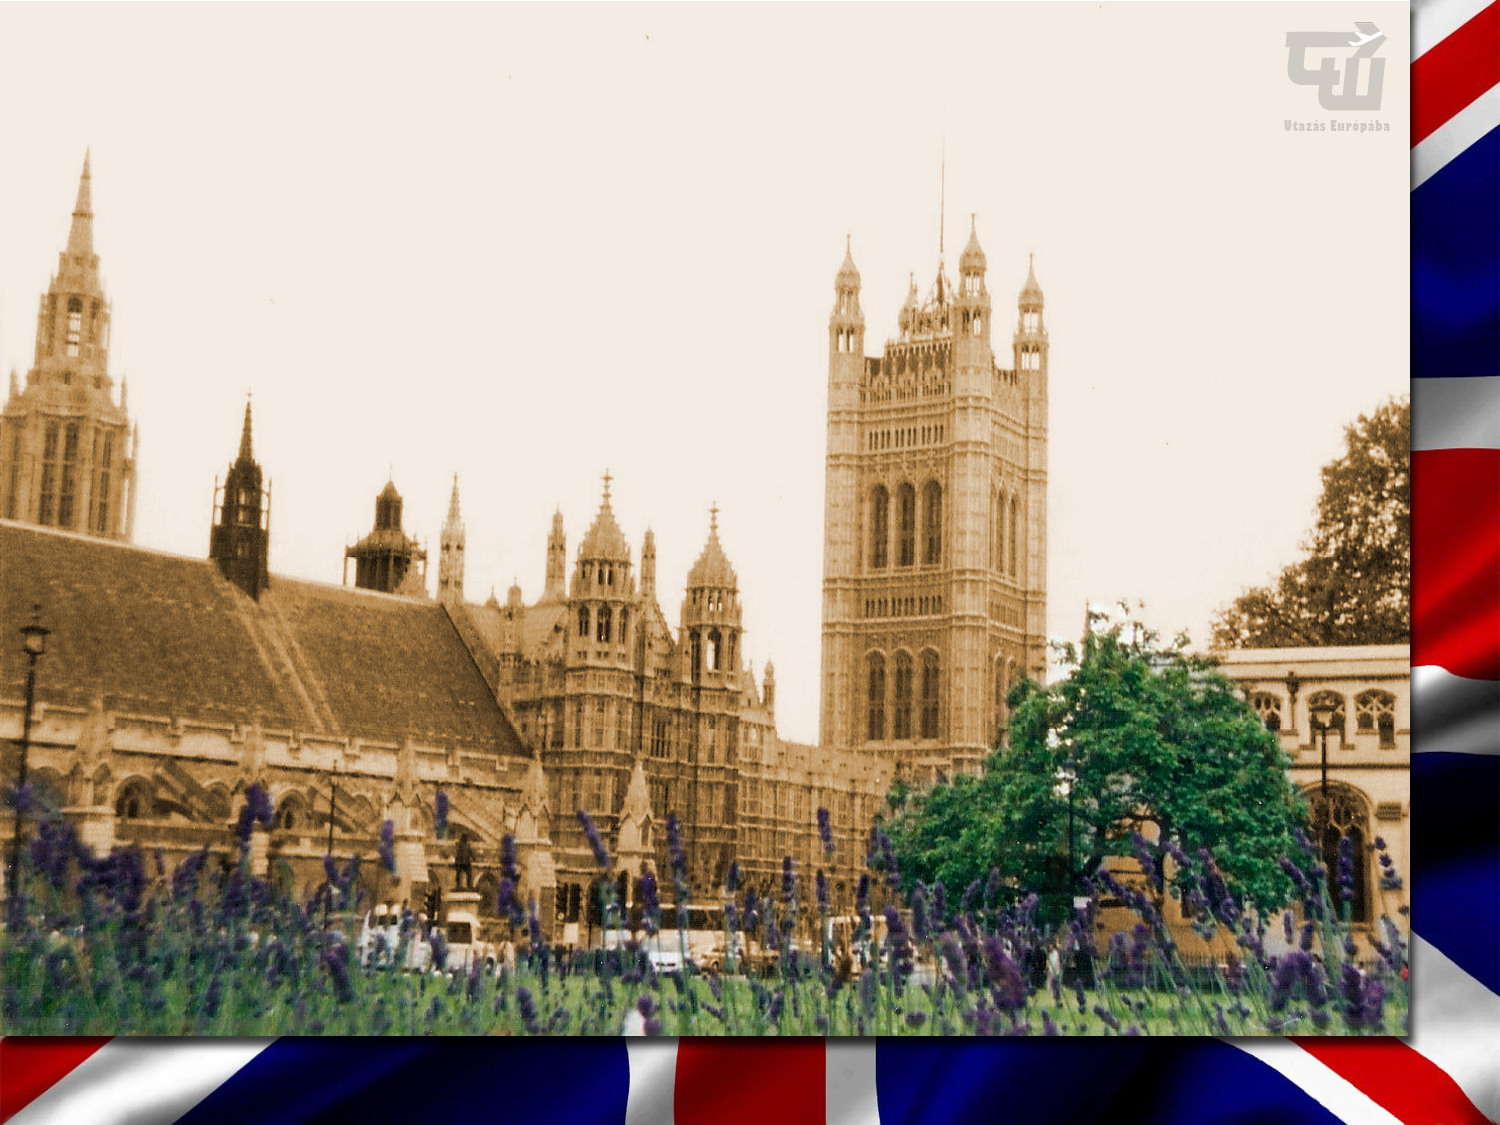 02_palace_of_westminster_lordok_haza_london_nagy-britannia_anglia_great_britain_england_utazas_europaba.jpg